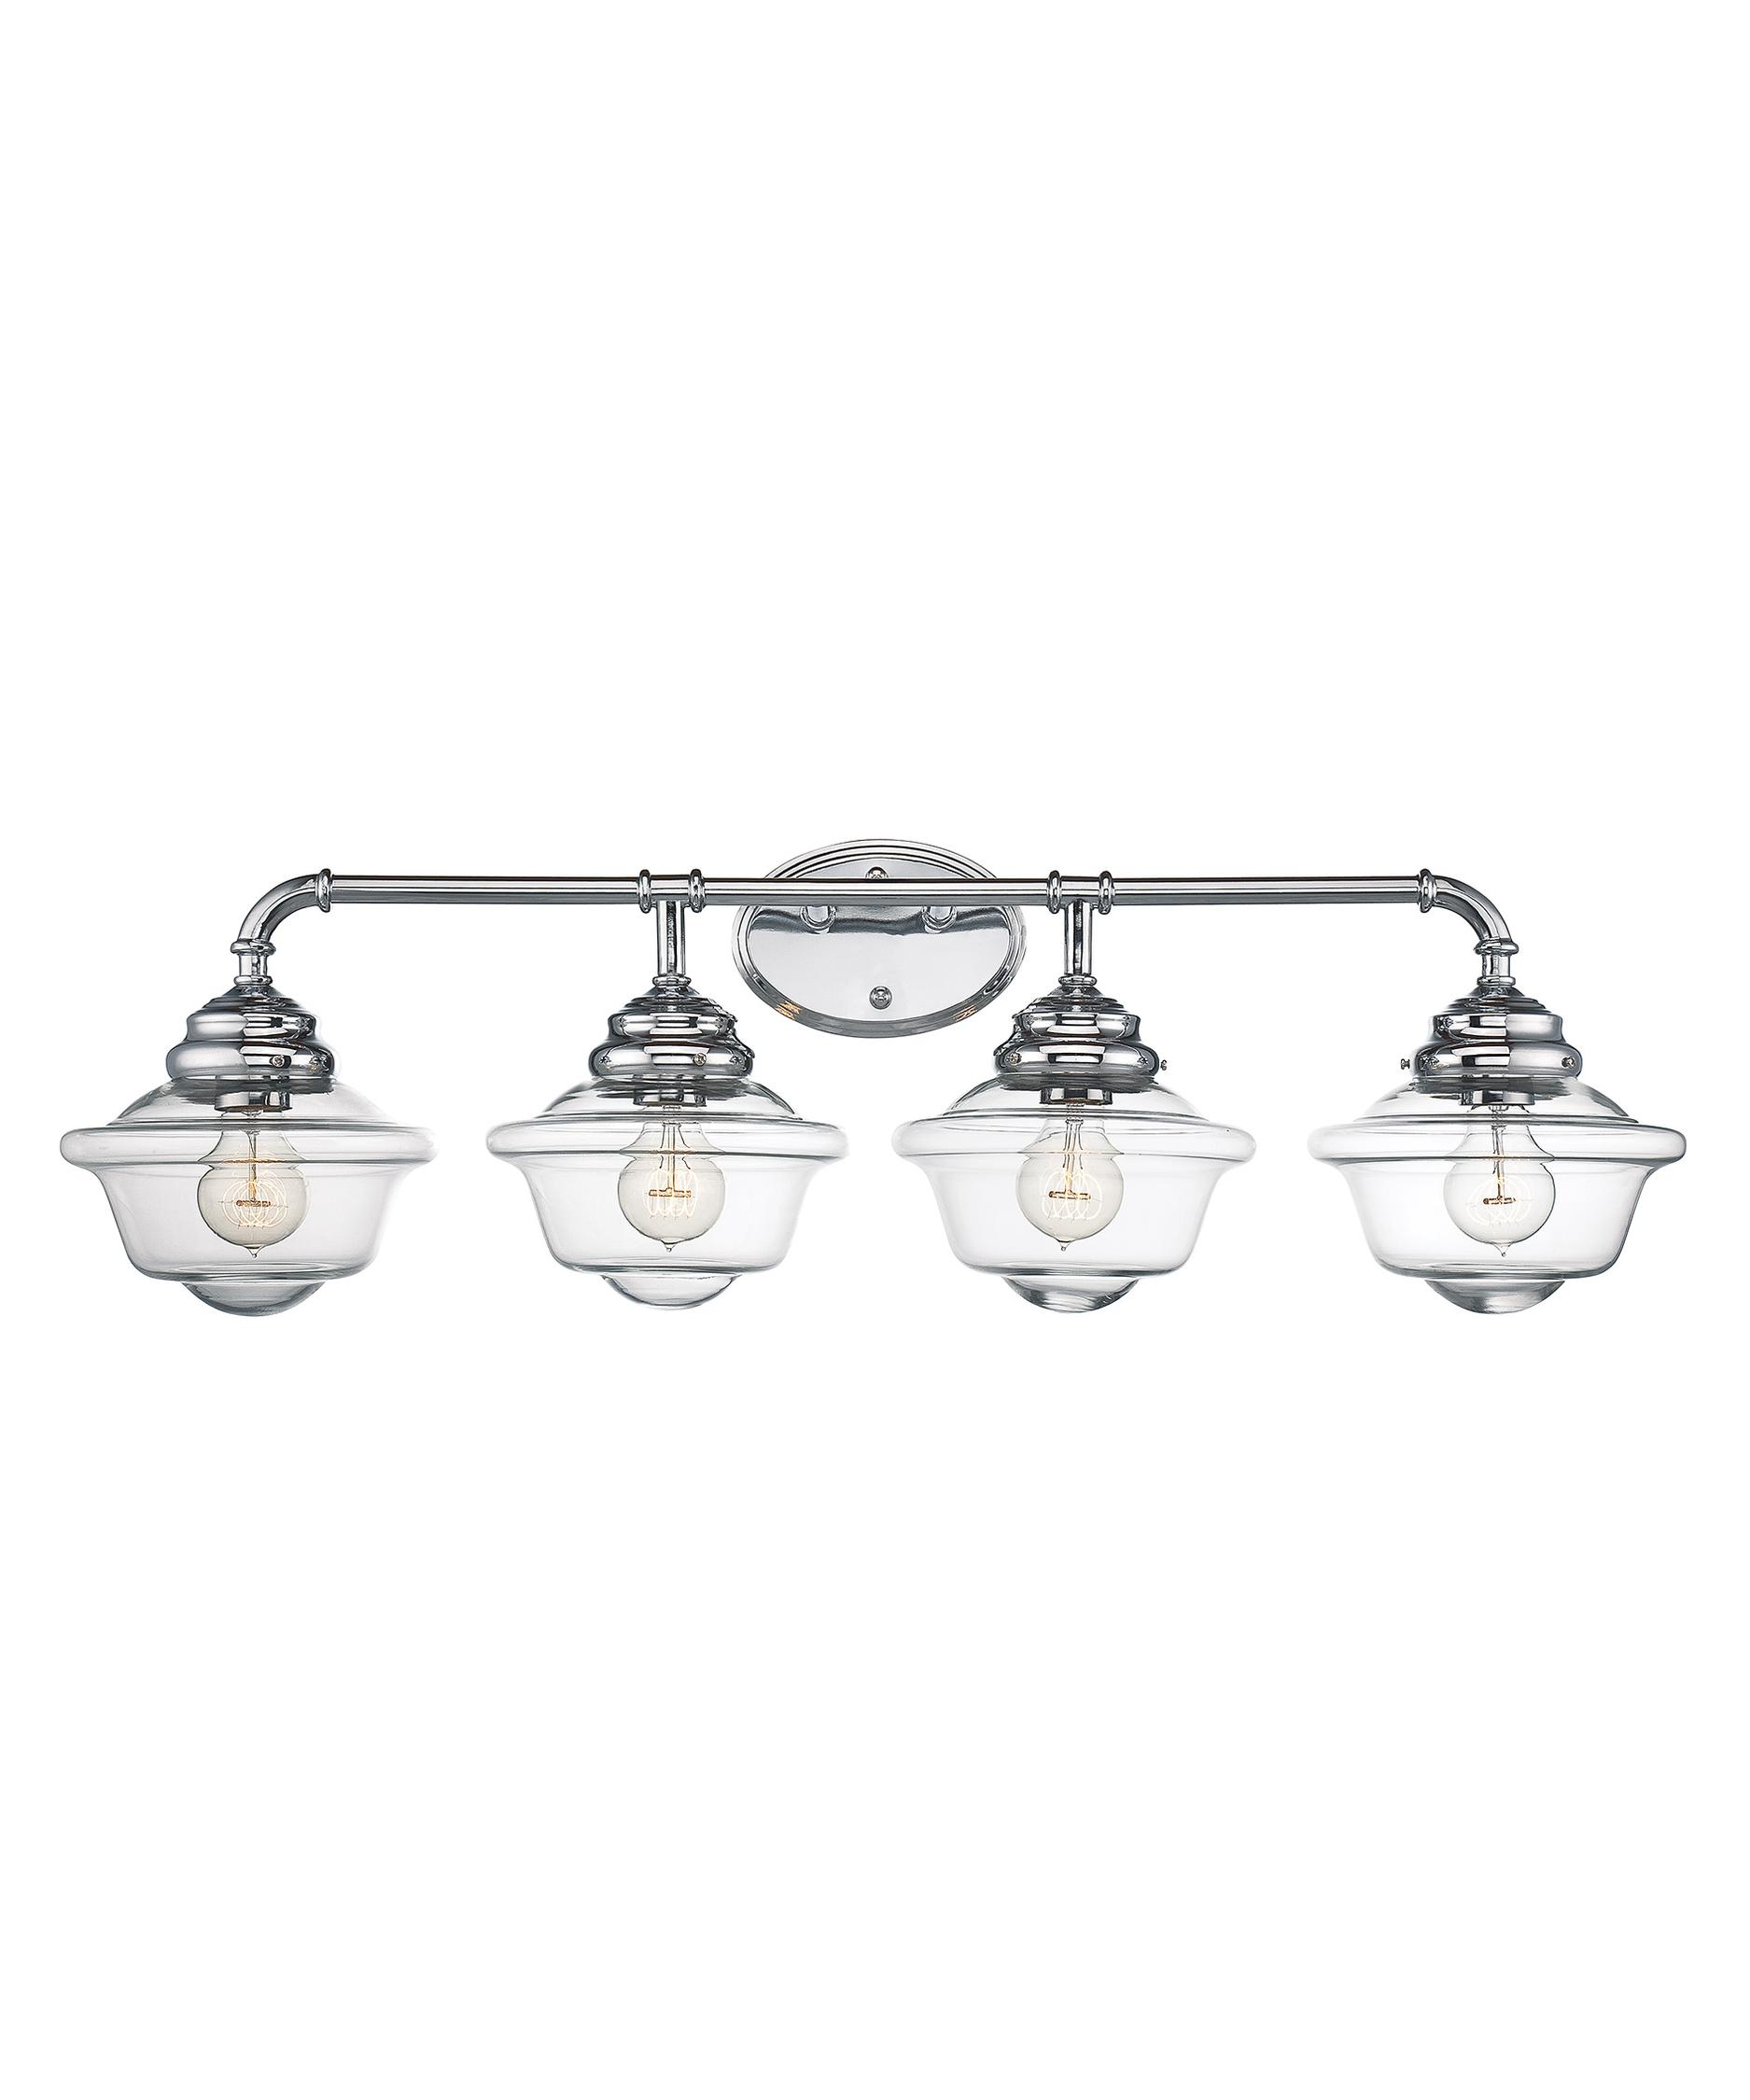 shown in chrome finish and clear glass bathroom vanity lighting 1